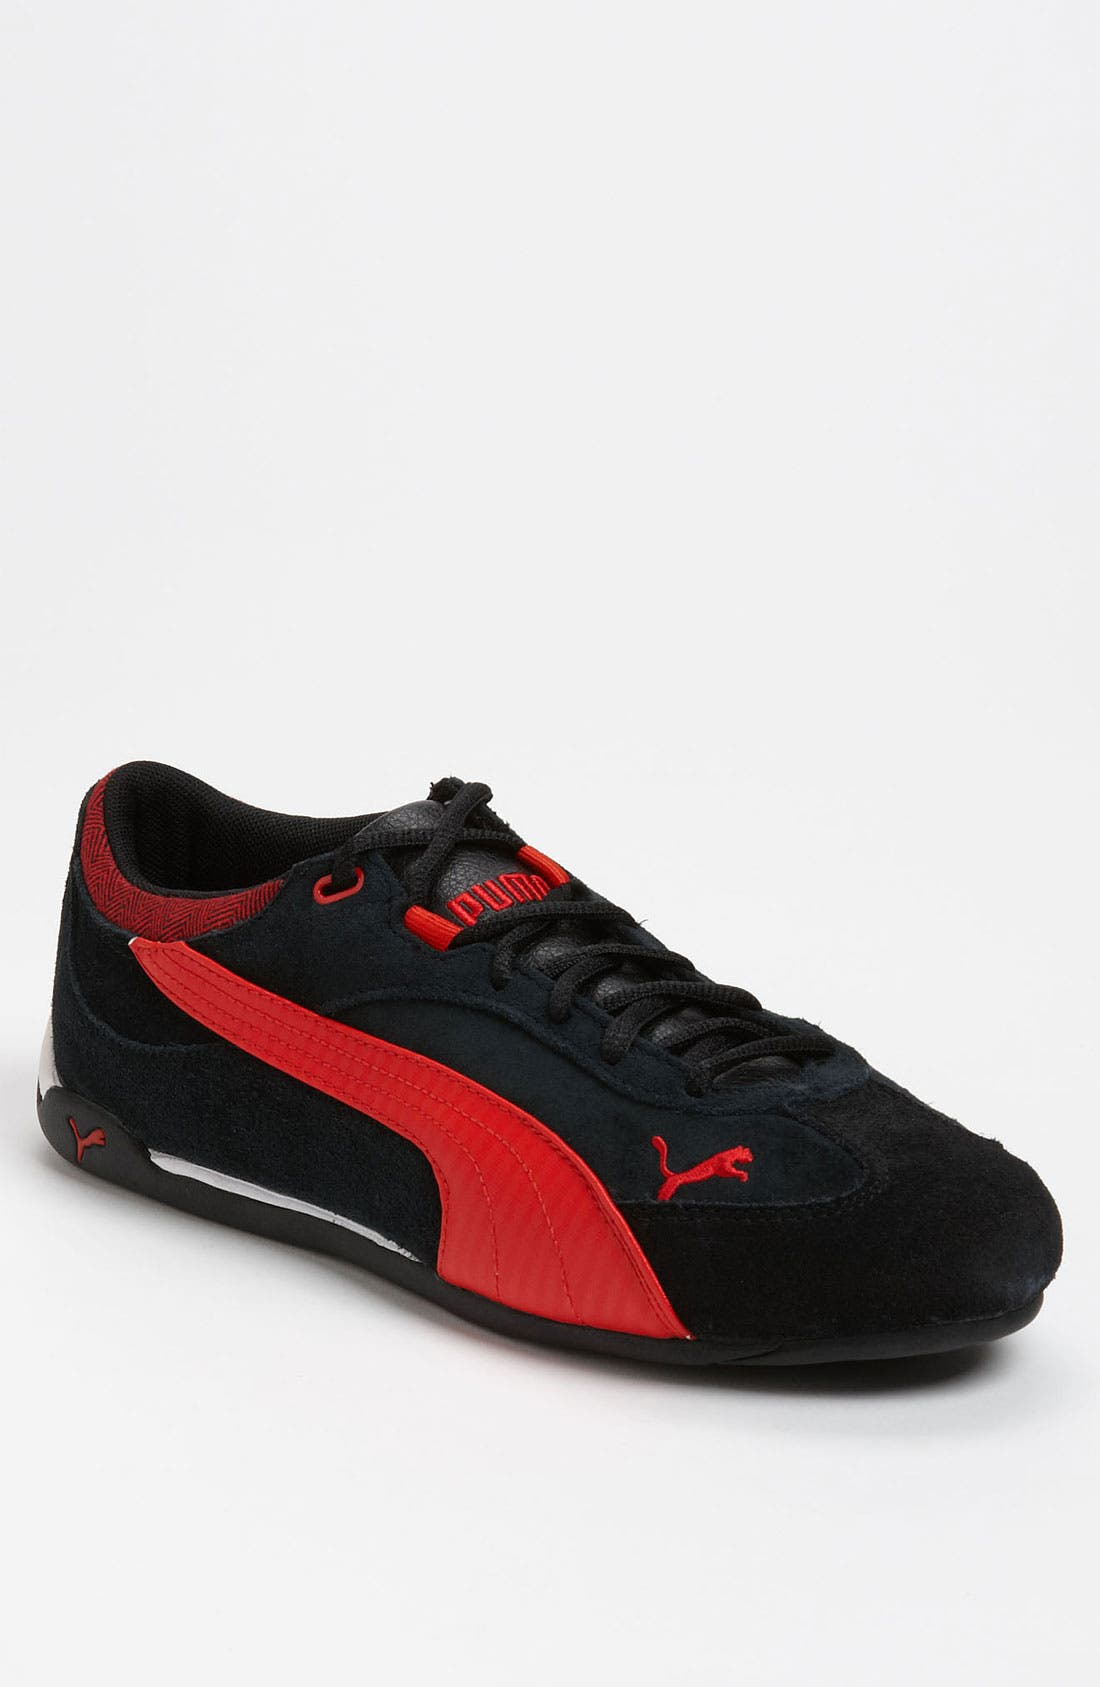 Main Image - PUMA 'Fast Cat' Sneaker (Men)